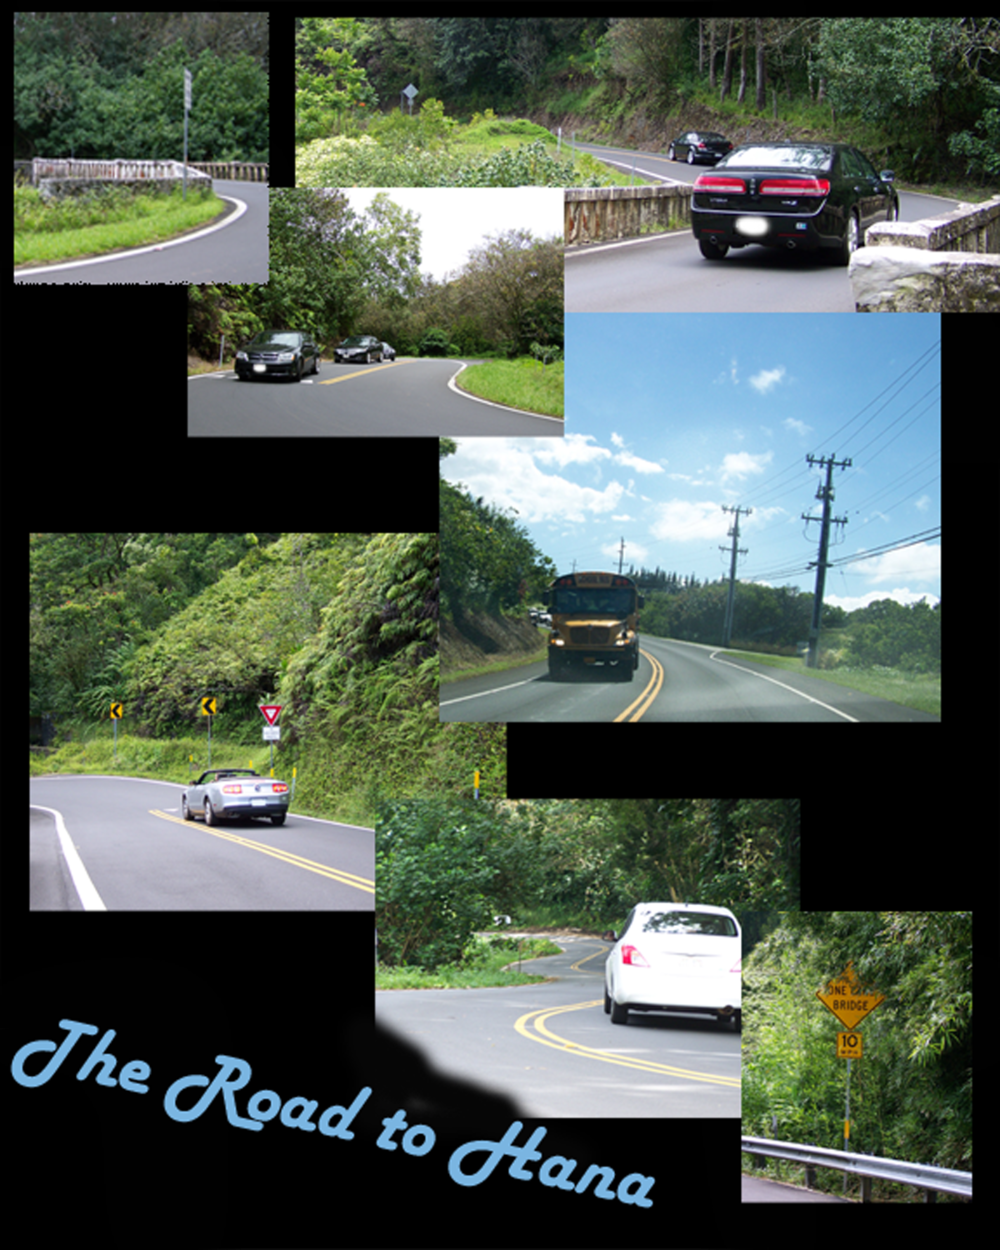 The Road to Hana is illustrative of both the challenges to and opportunities for providing transportation solutions for the citizens of Hawaii.